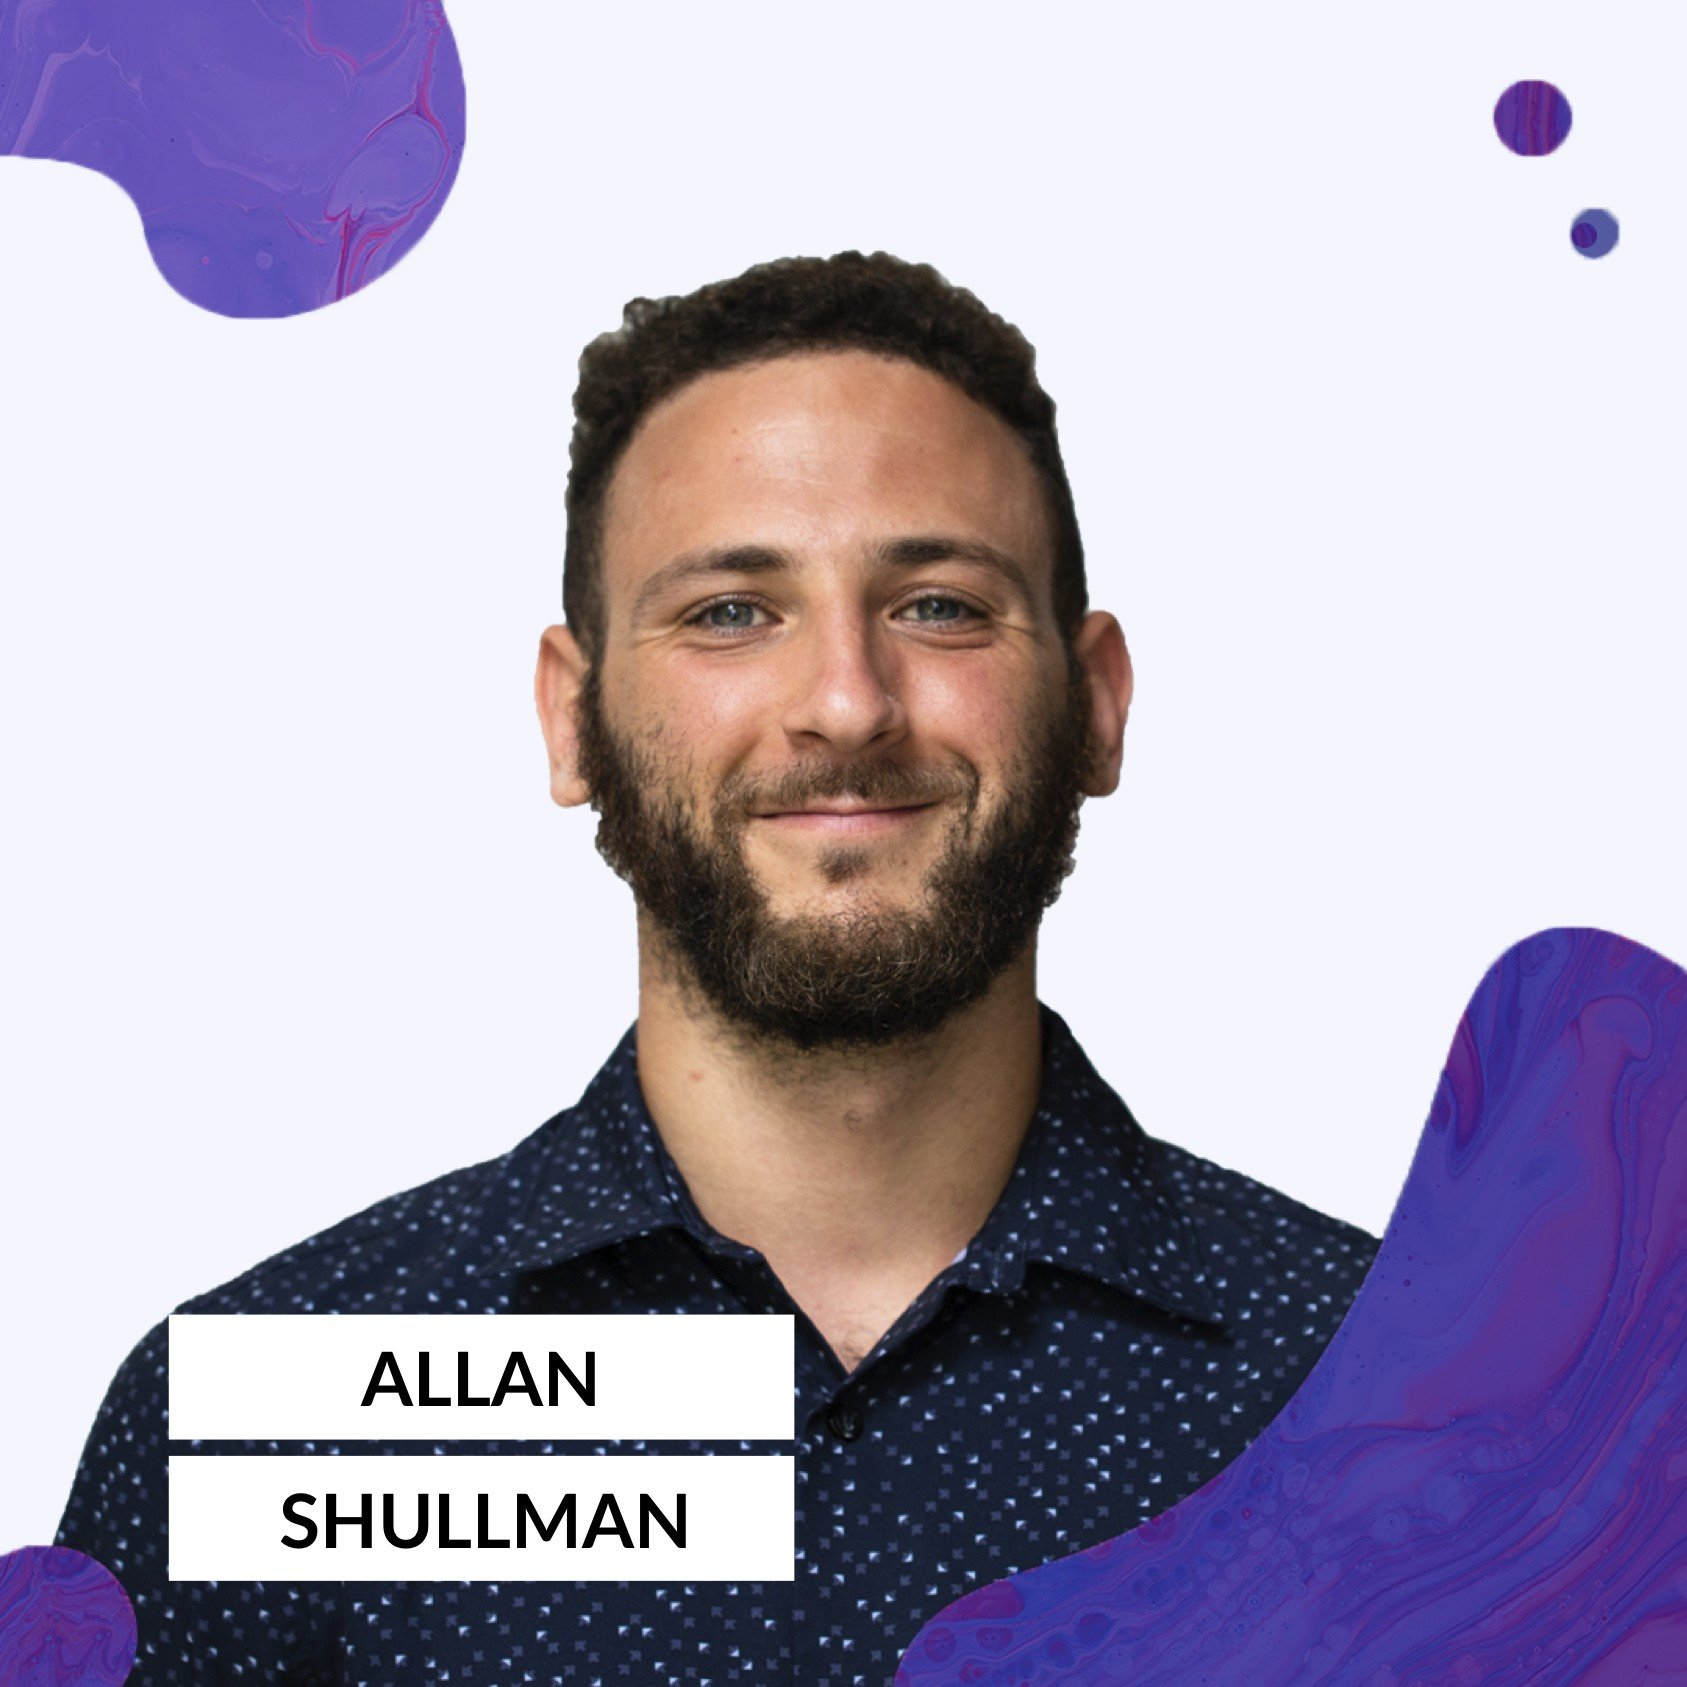 #3 Allan Shullman – How To Come Up With Creative Ideas, Owning and Automating eCommerce Business & Favorite Brands